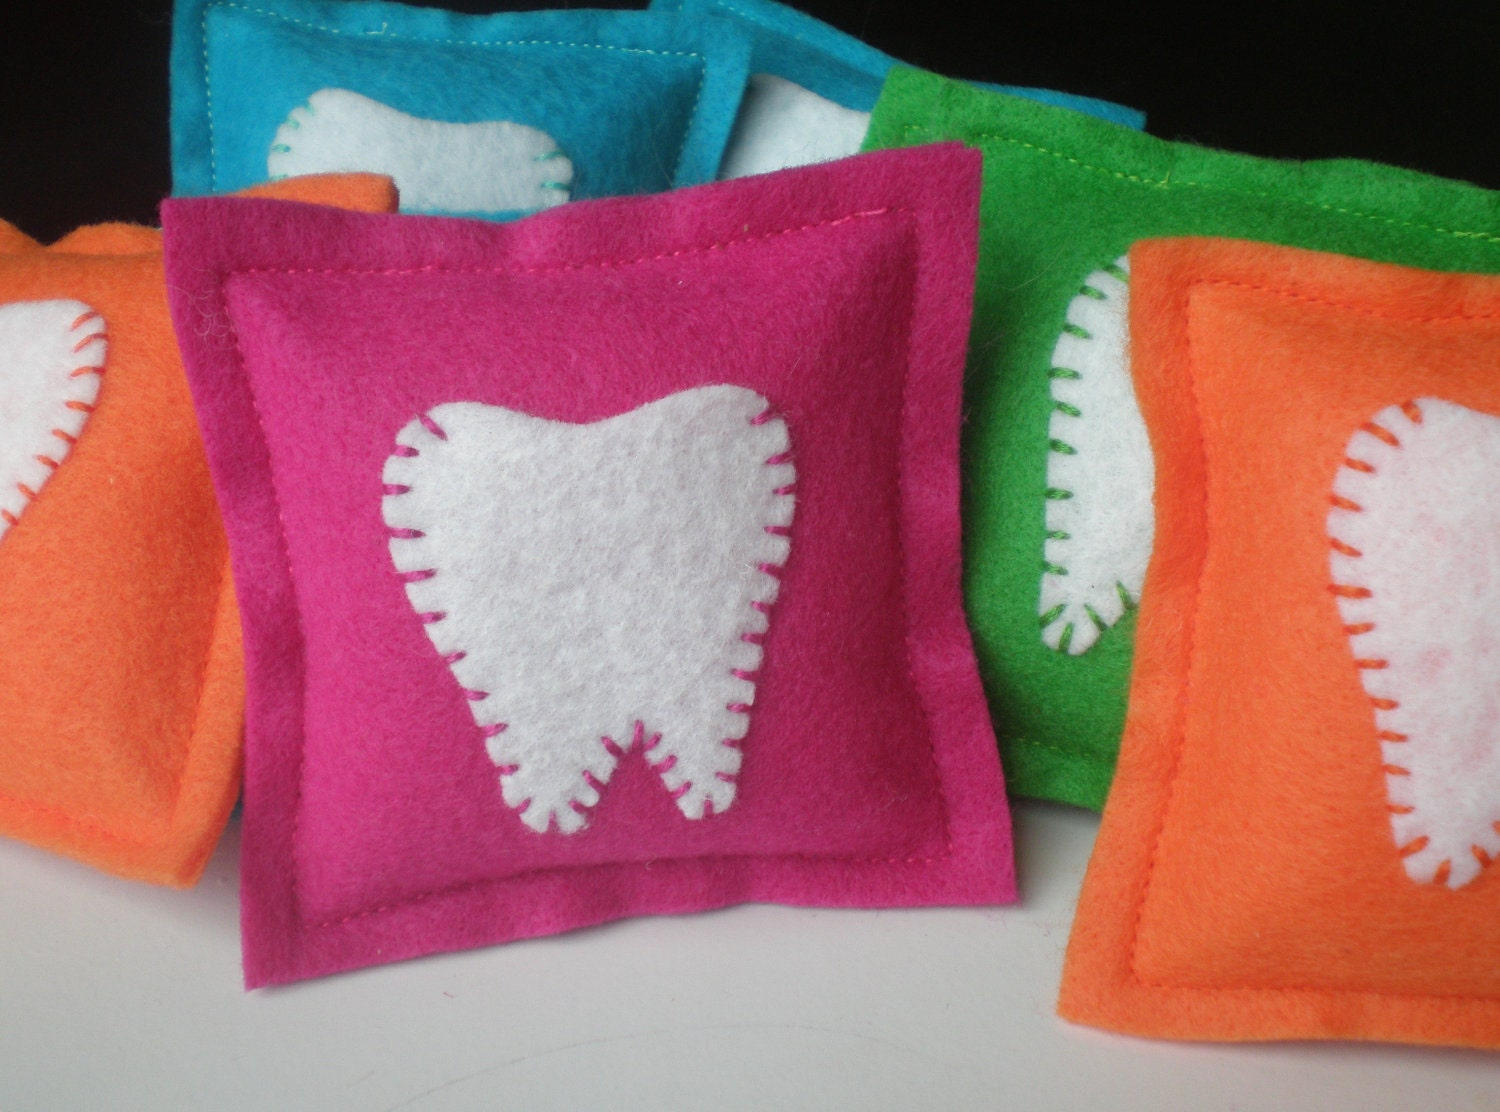 Felt Tooth Fairy Pillows by LittleBirdieandMe on Etsy